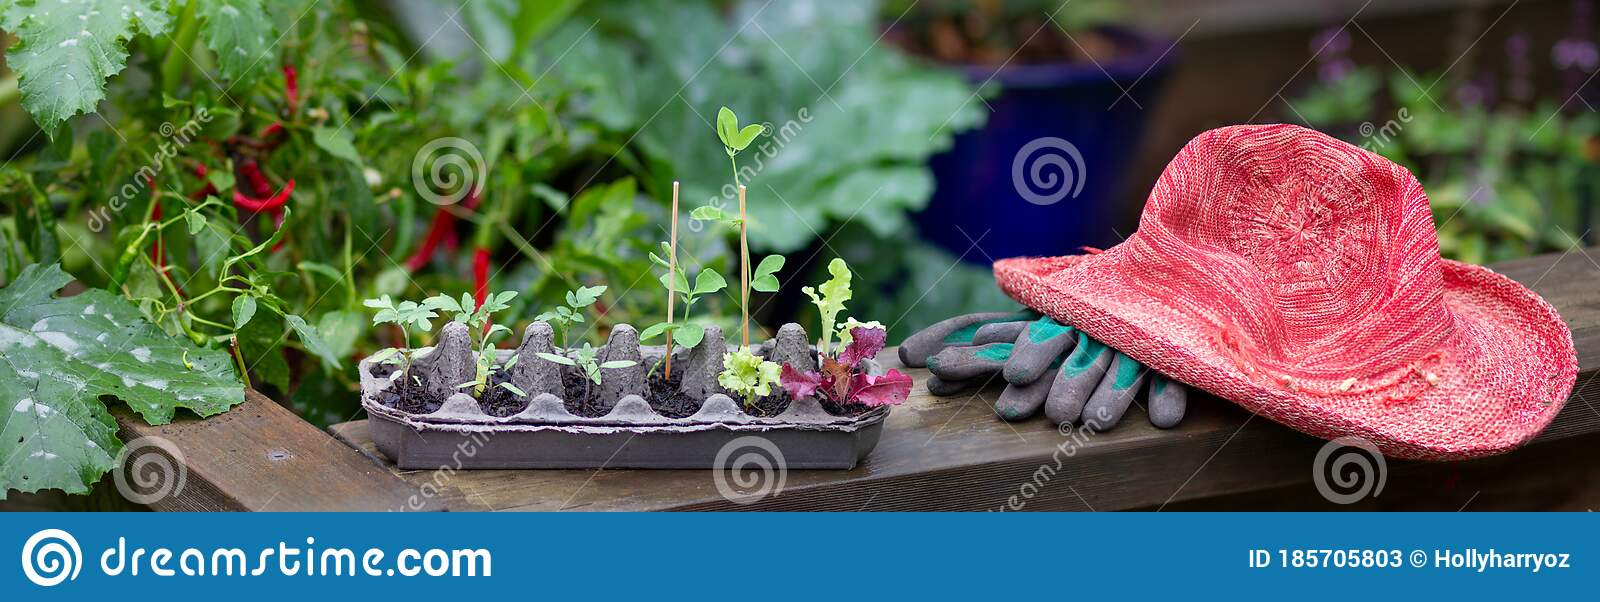 Vegetable Seedlings Growing In Reused Egg Box Outside On Raised Garden Bed Stock Image Image Of Recycle Authentic 185705803